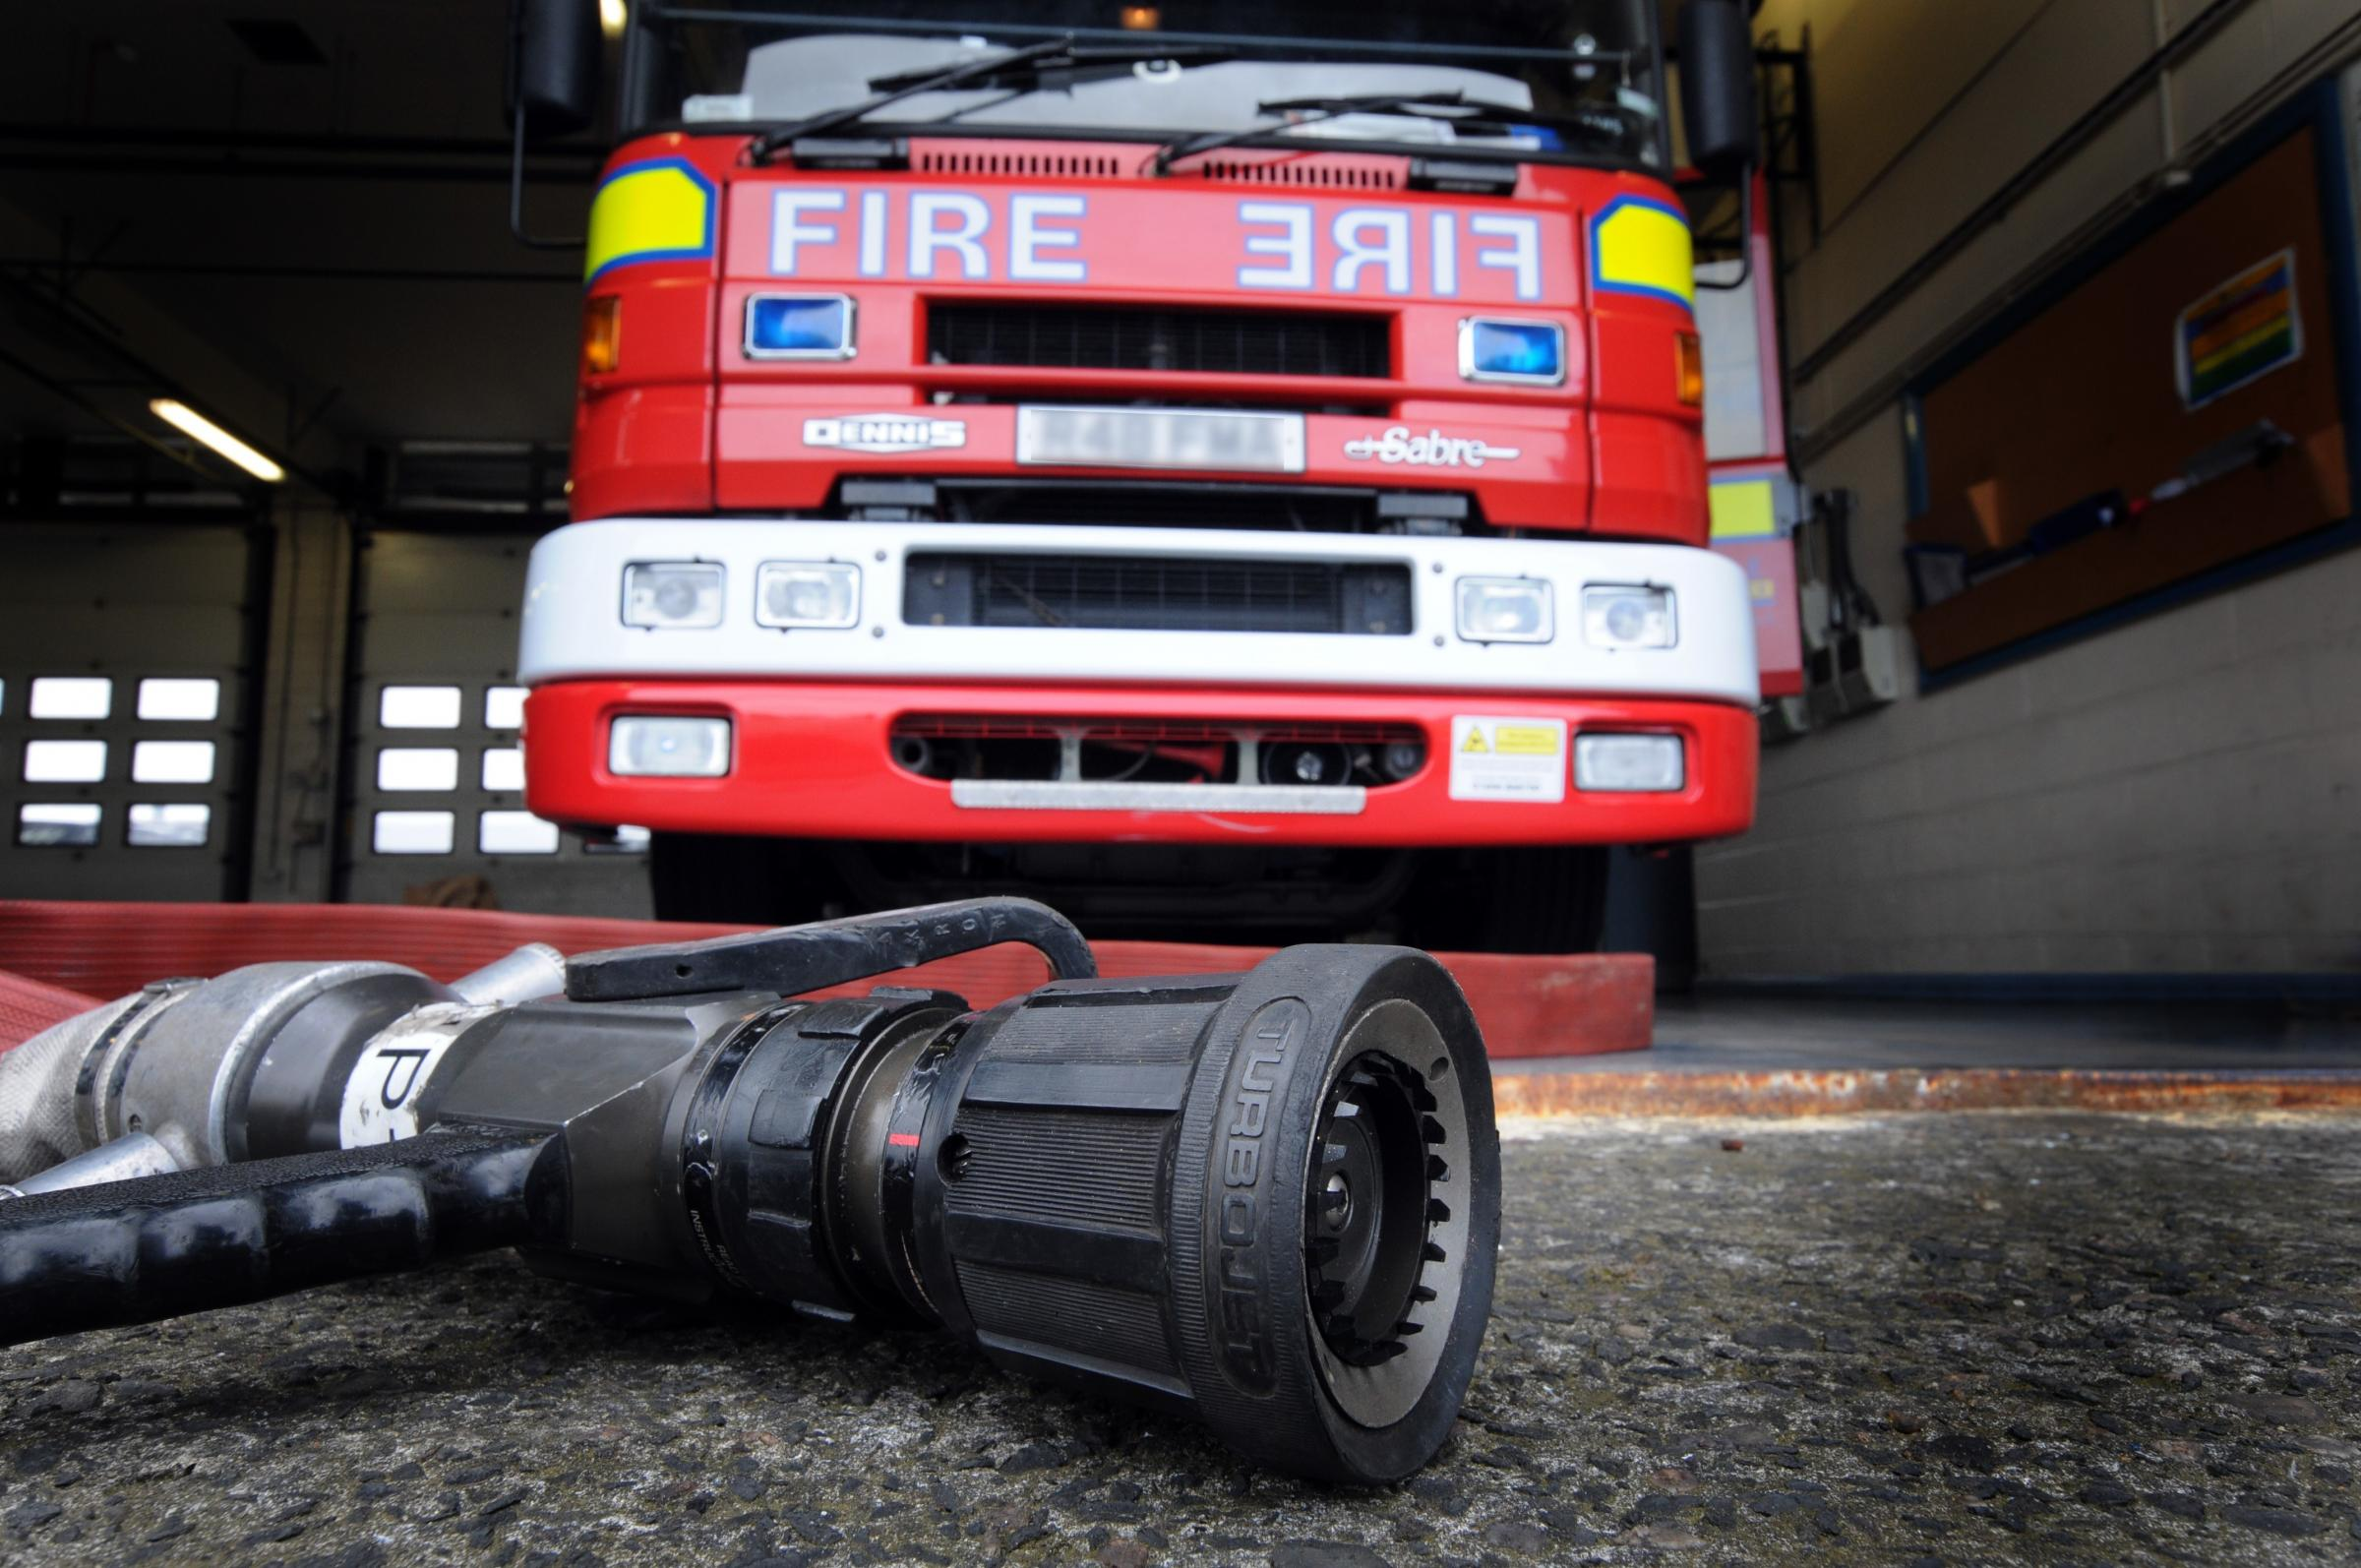 Cheshire Fire and Rescue Service was called to the incident.